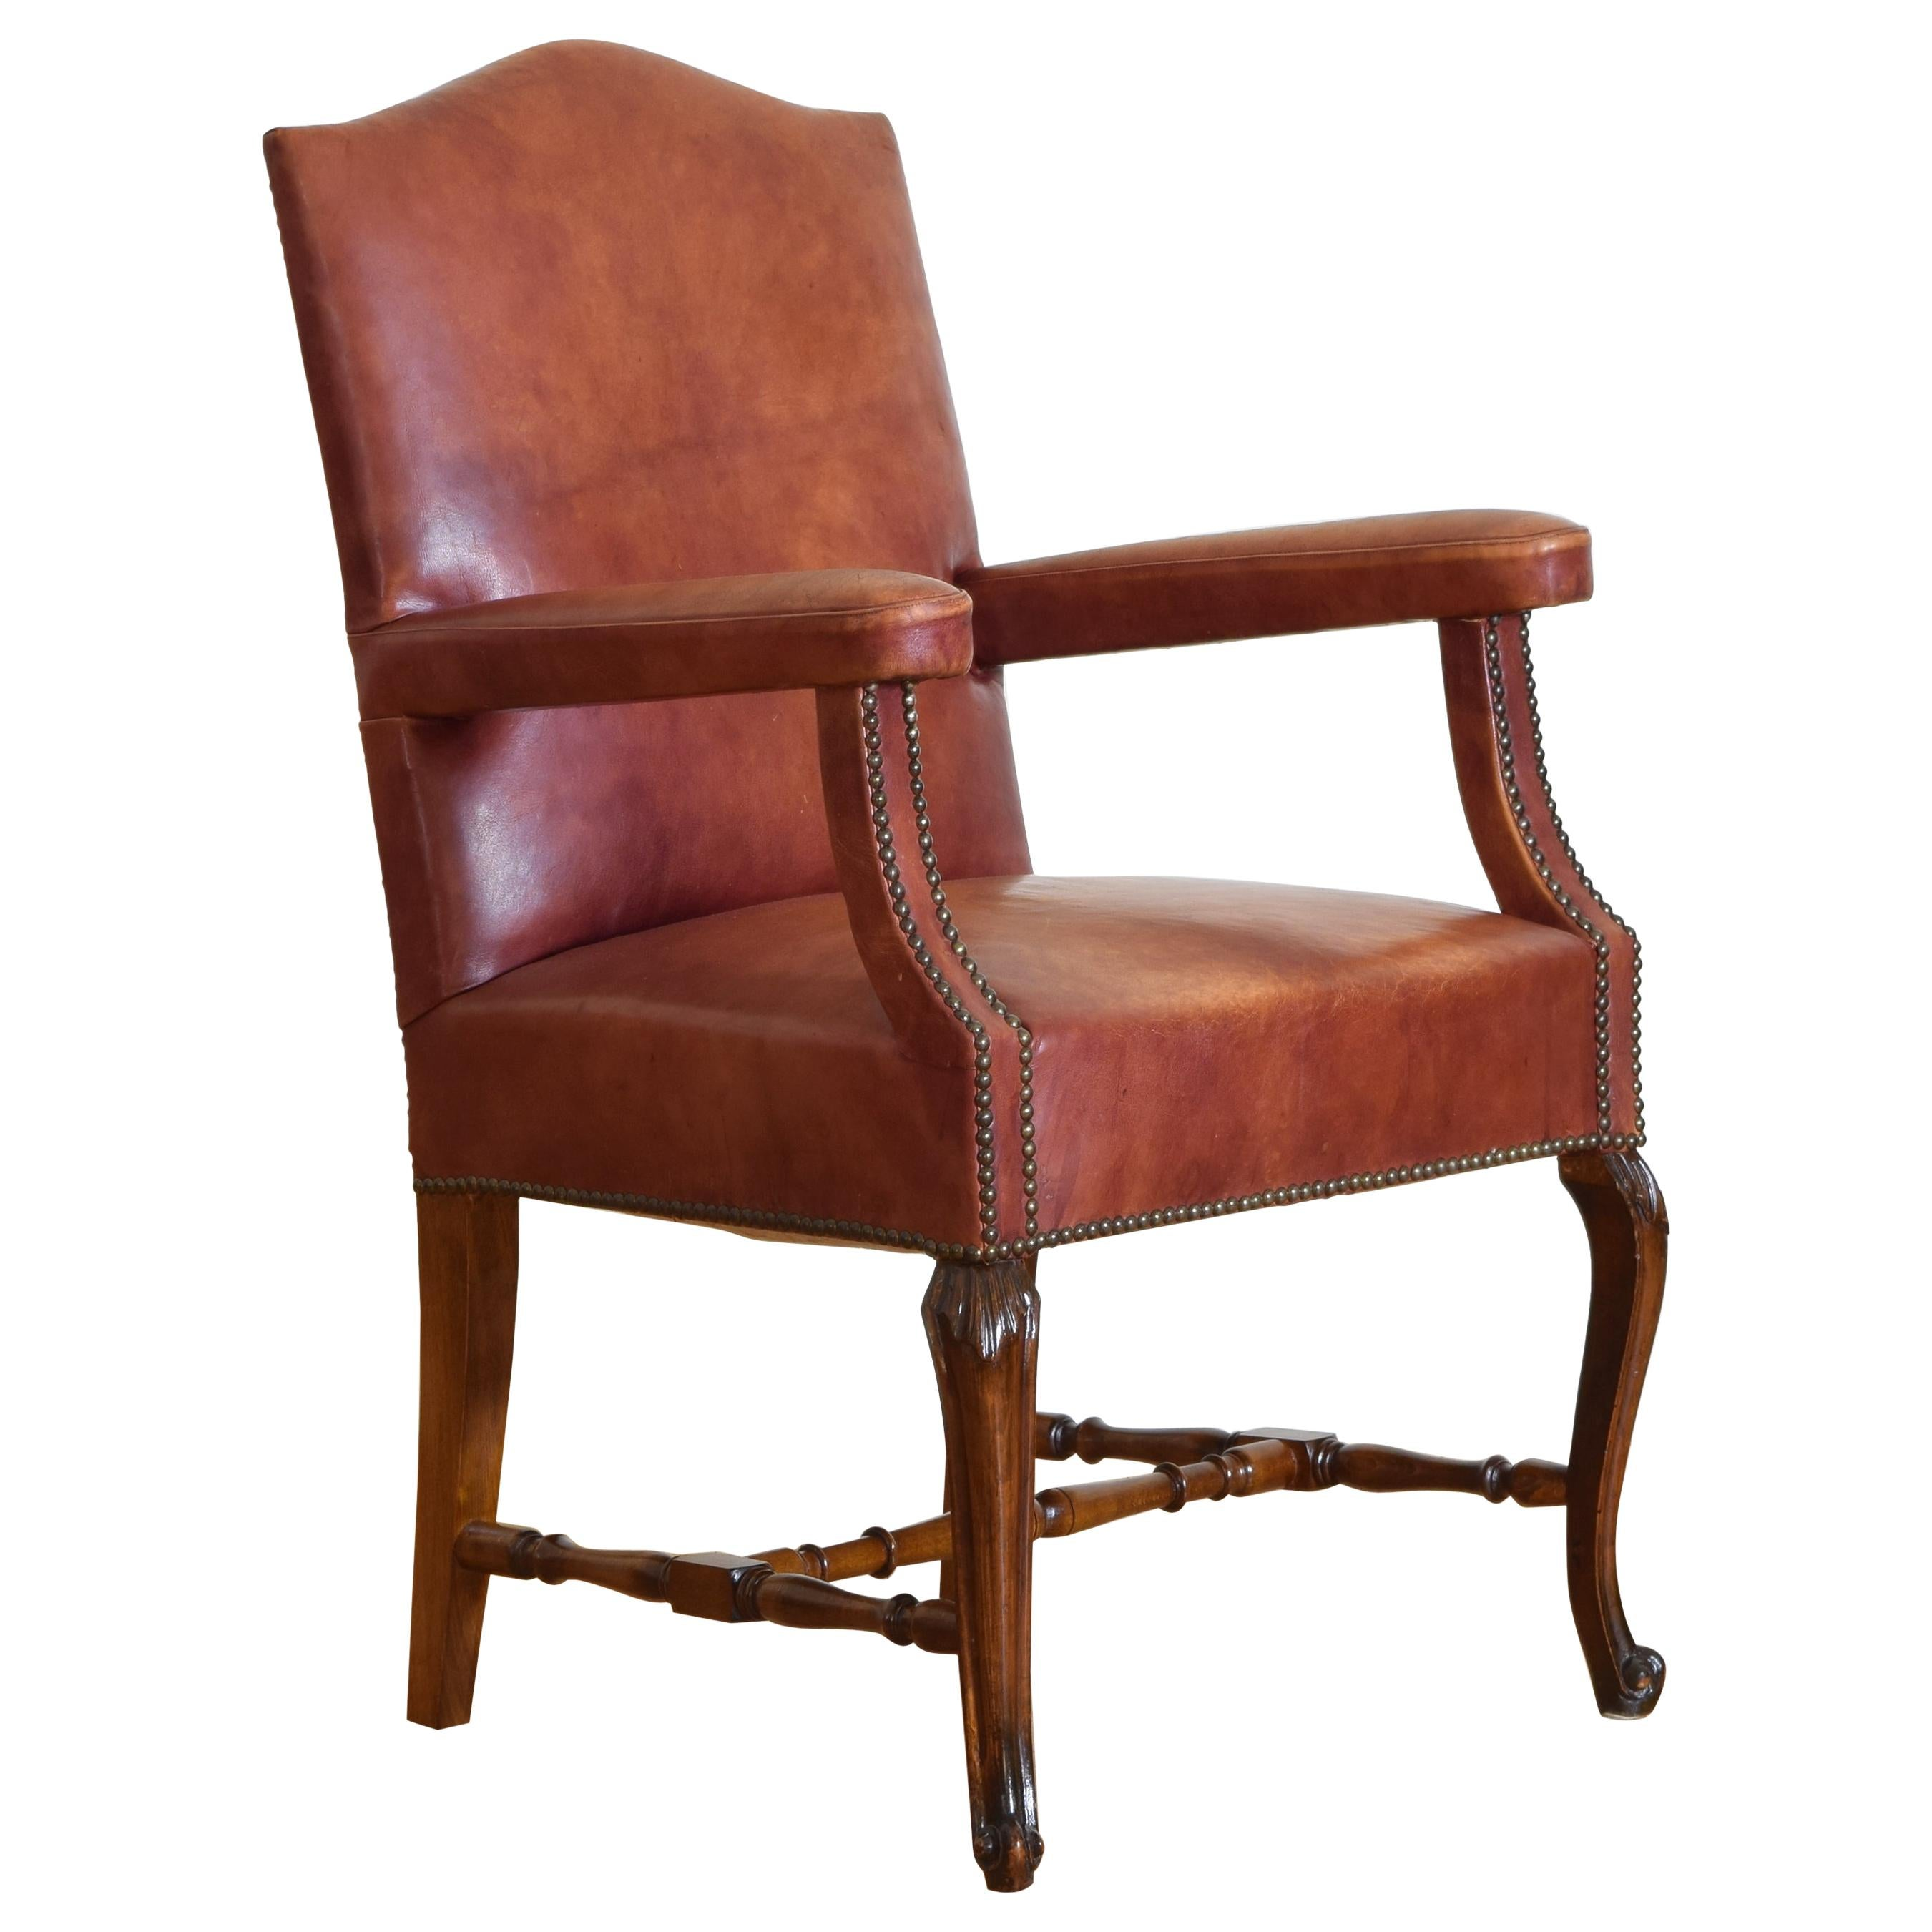 Italian Neoclassical Style Walnut & Leather Upholstered Armchair